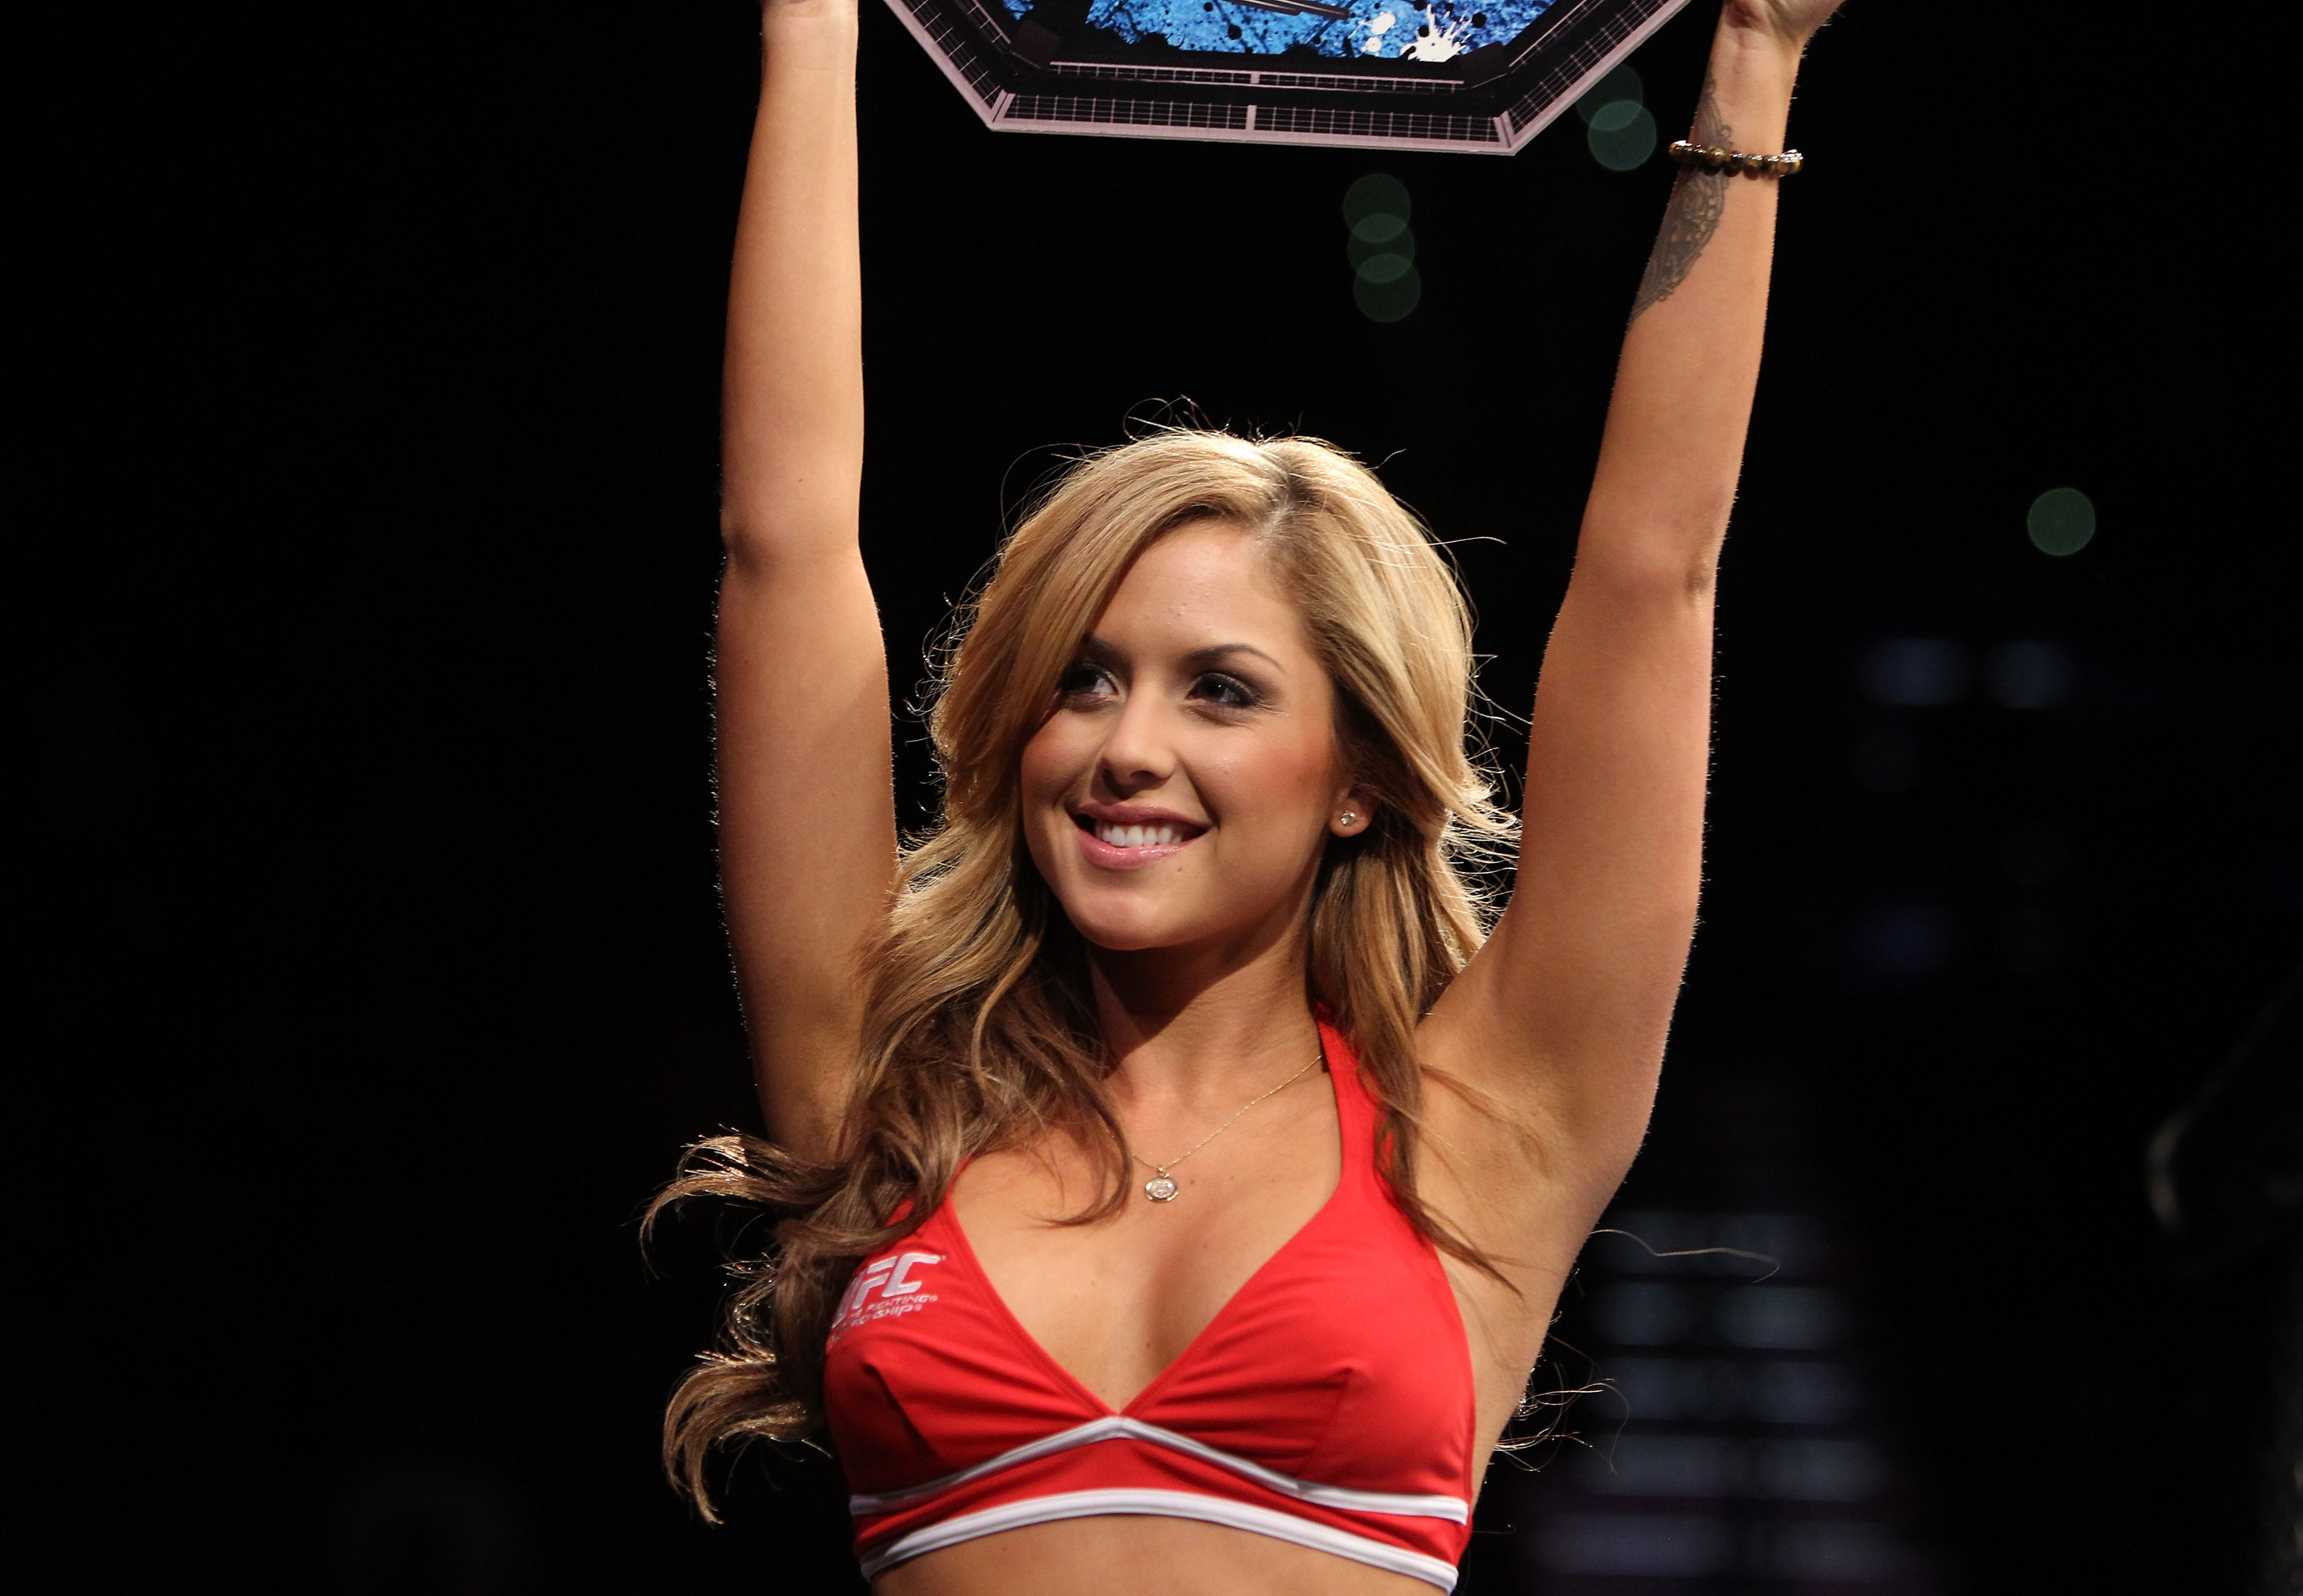 LAS VEGAS, NV - DECEMBER 30:  Octagon Girl Brittney Palmer introduces a round during the UFC 141 event at the MGM Grand Garden Arena on December 30, 2011 in Las Vegas, Nevada.  (Photo by Josh Hedges/Zuffa LLC/Zuffa LLC via Getty Images) *** Local Caption *** Brittney Palmer